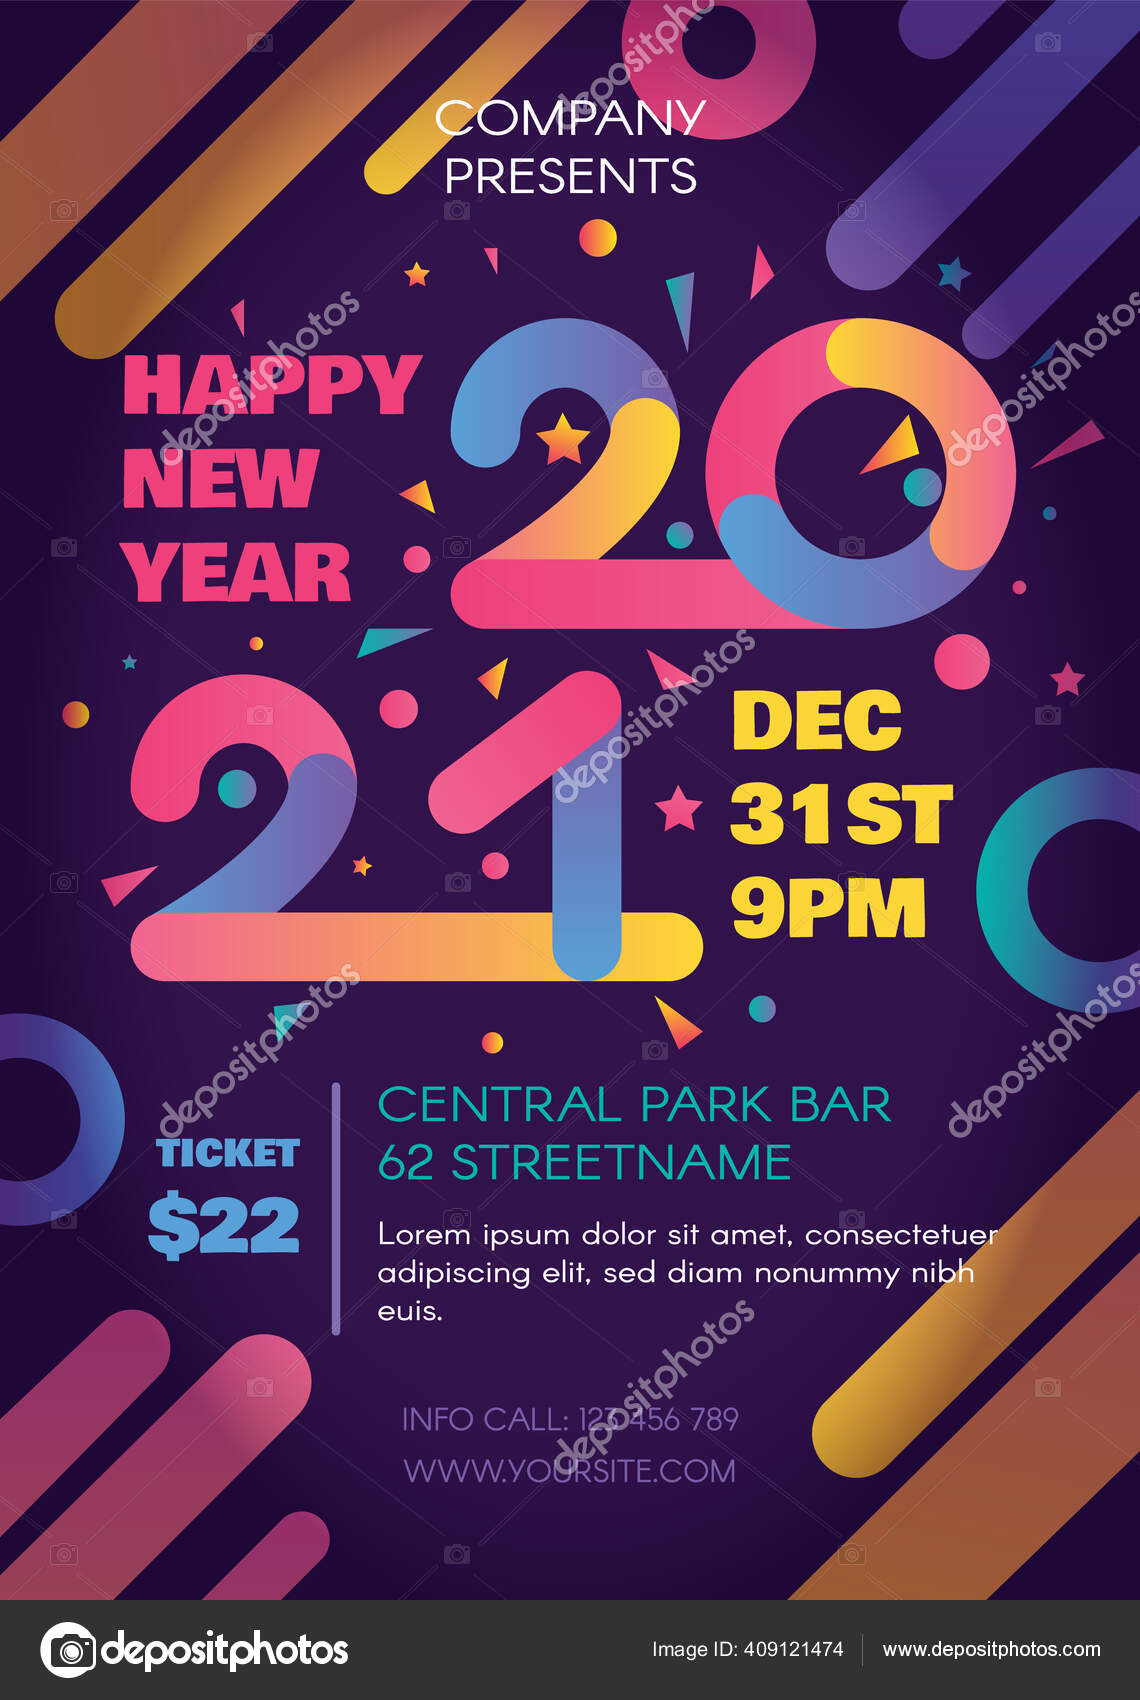 2021 New Year Party Celebration Poster Flyer Design Template Invitation Stock Vector C Barsrsind 409121474